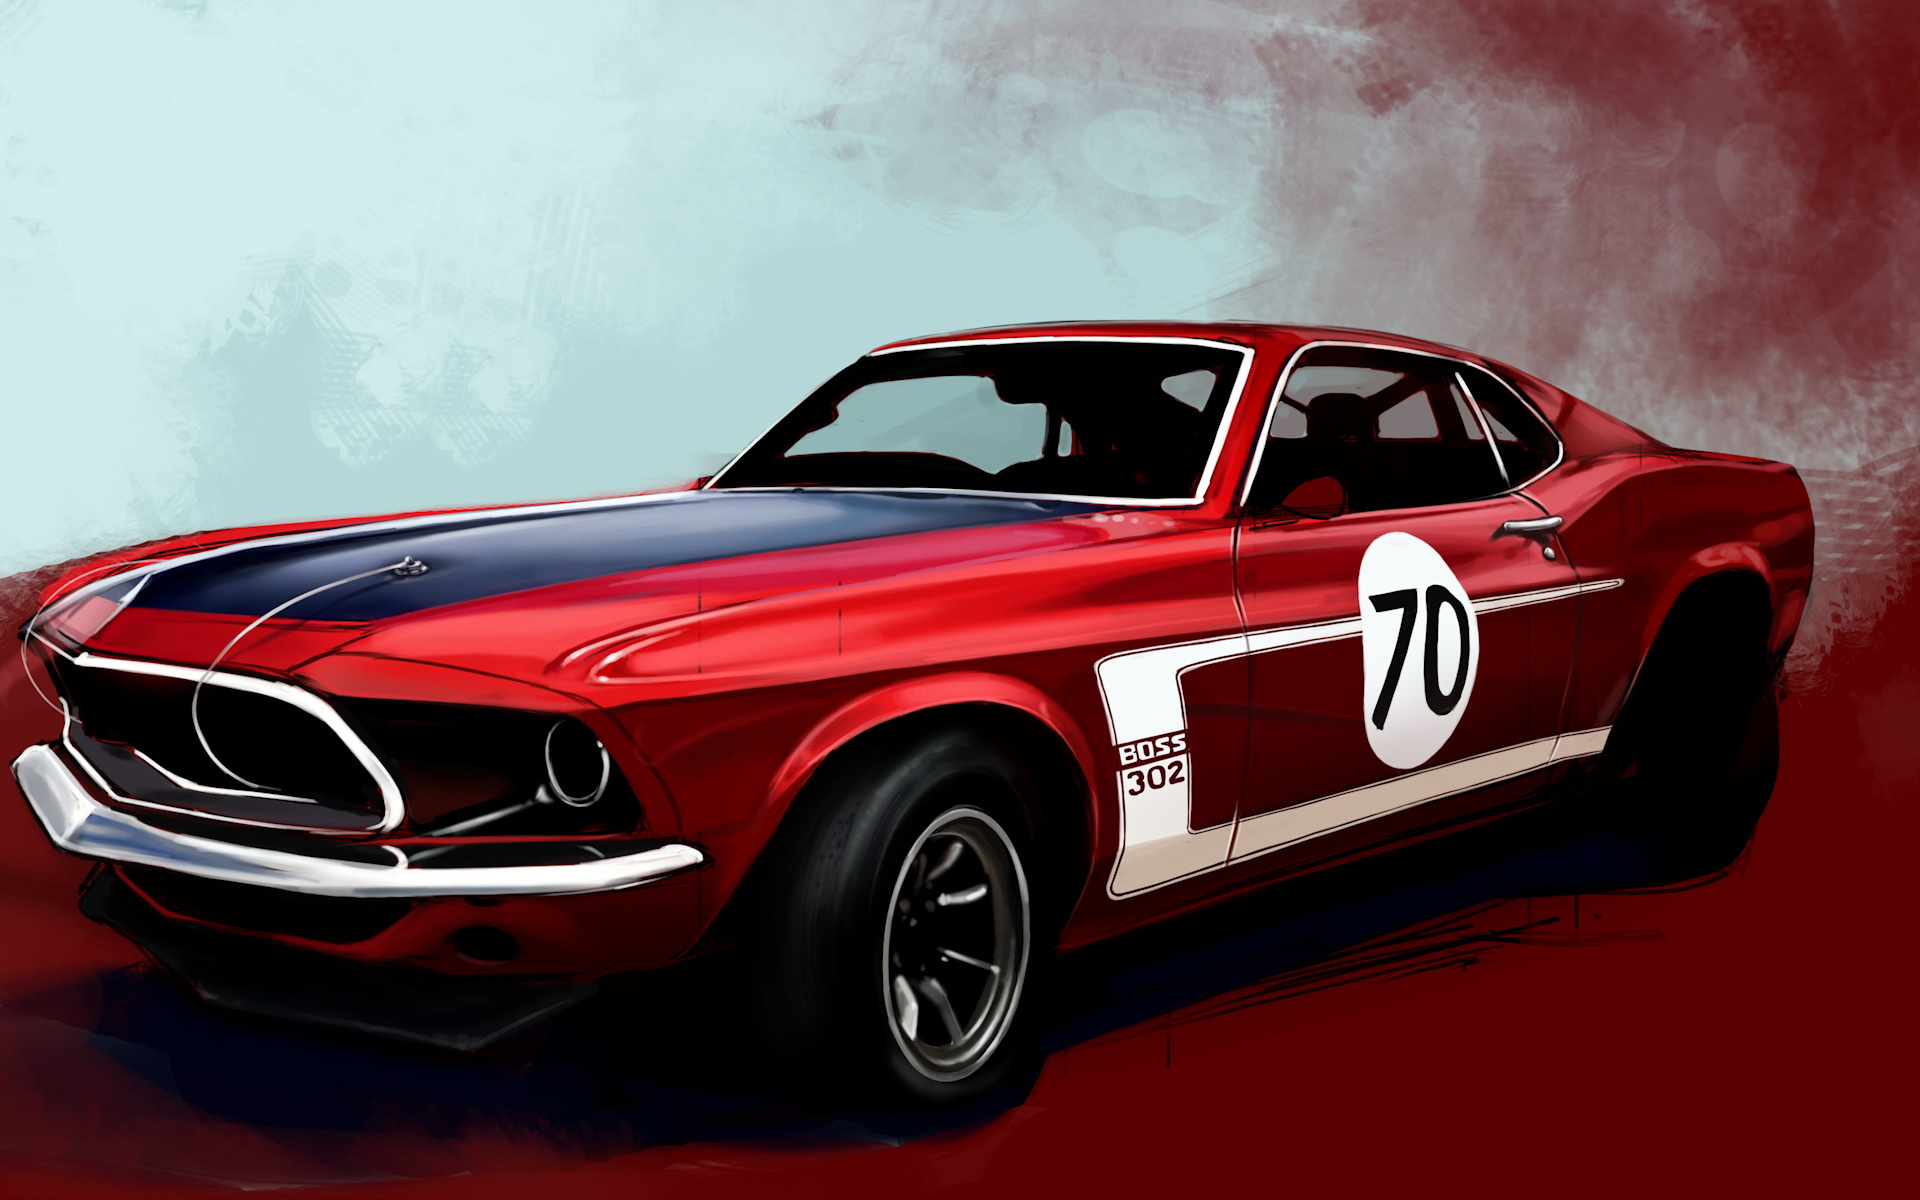 Drawn wallpapers Red sports car 013837 1920x1200